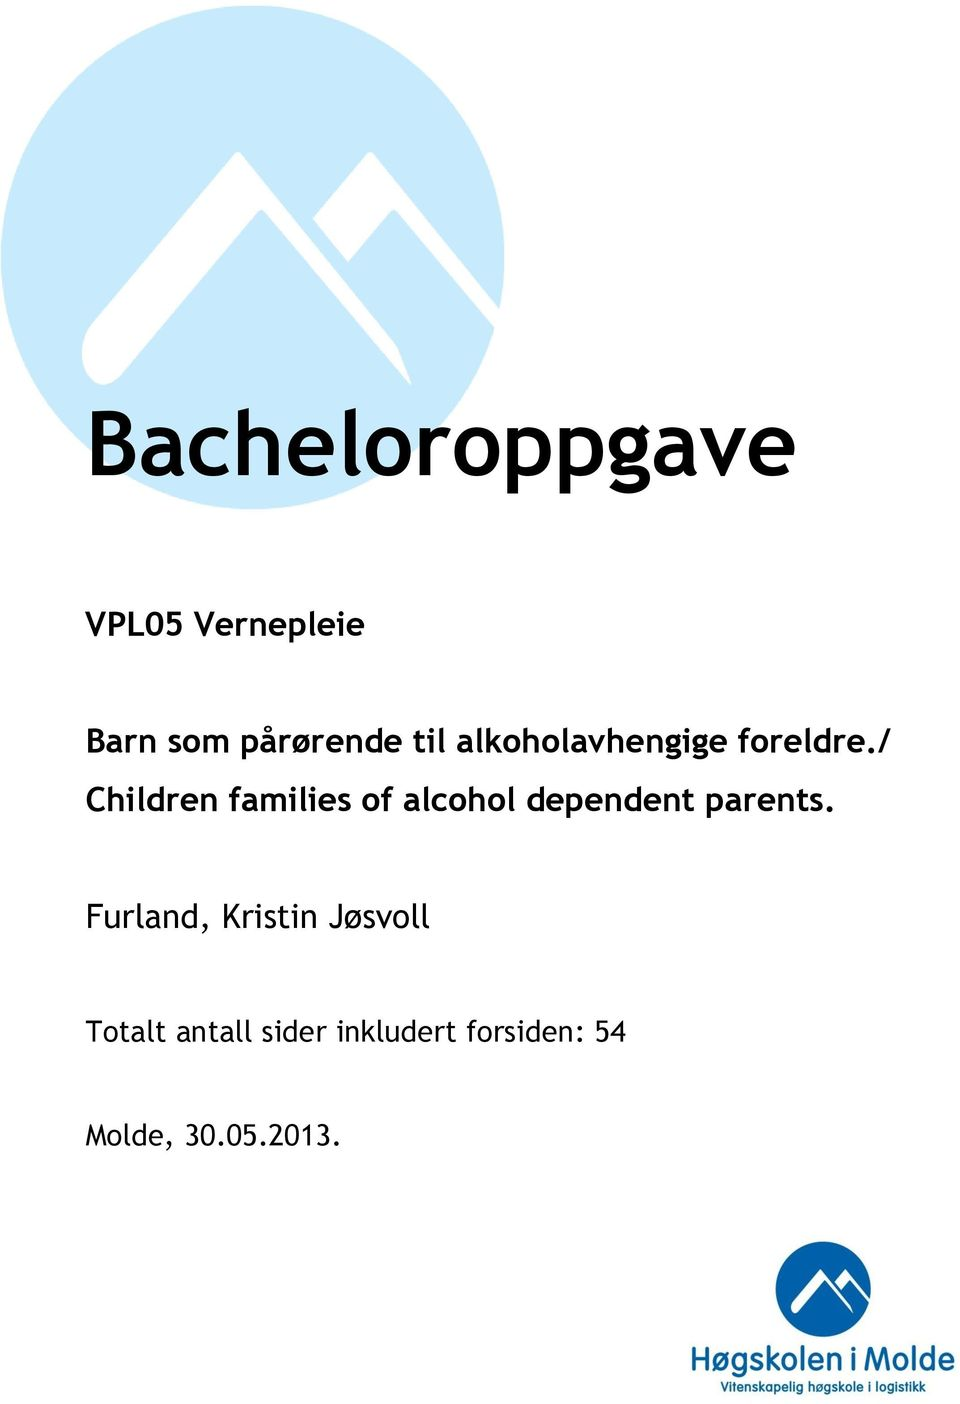 / Children families of alcohol dependent parents.